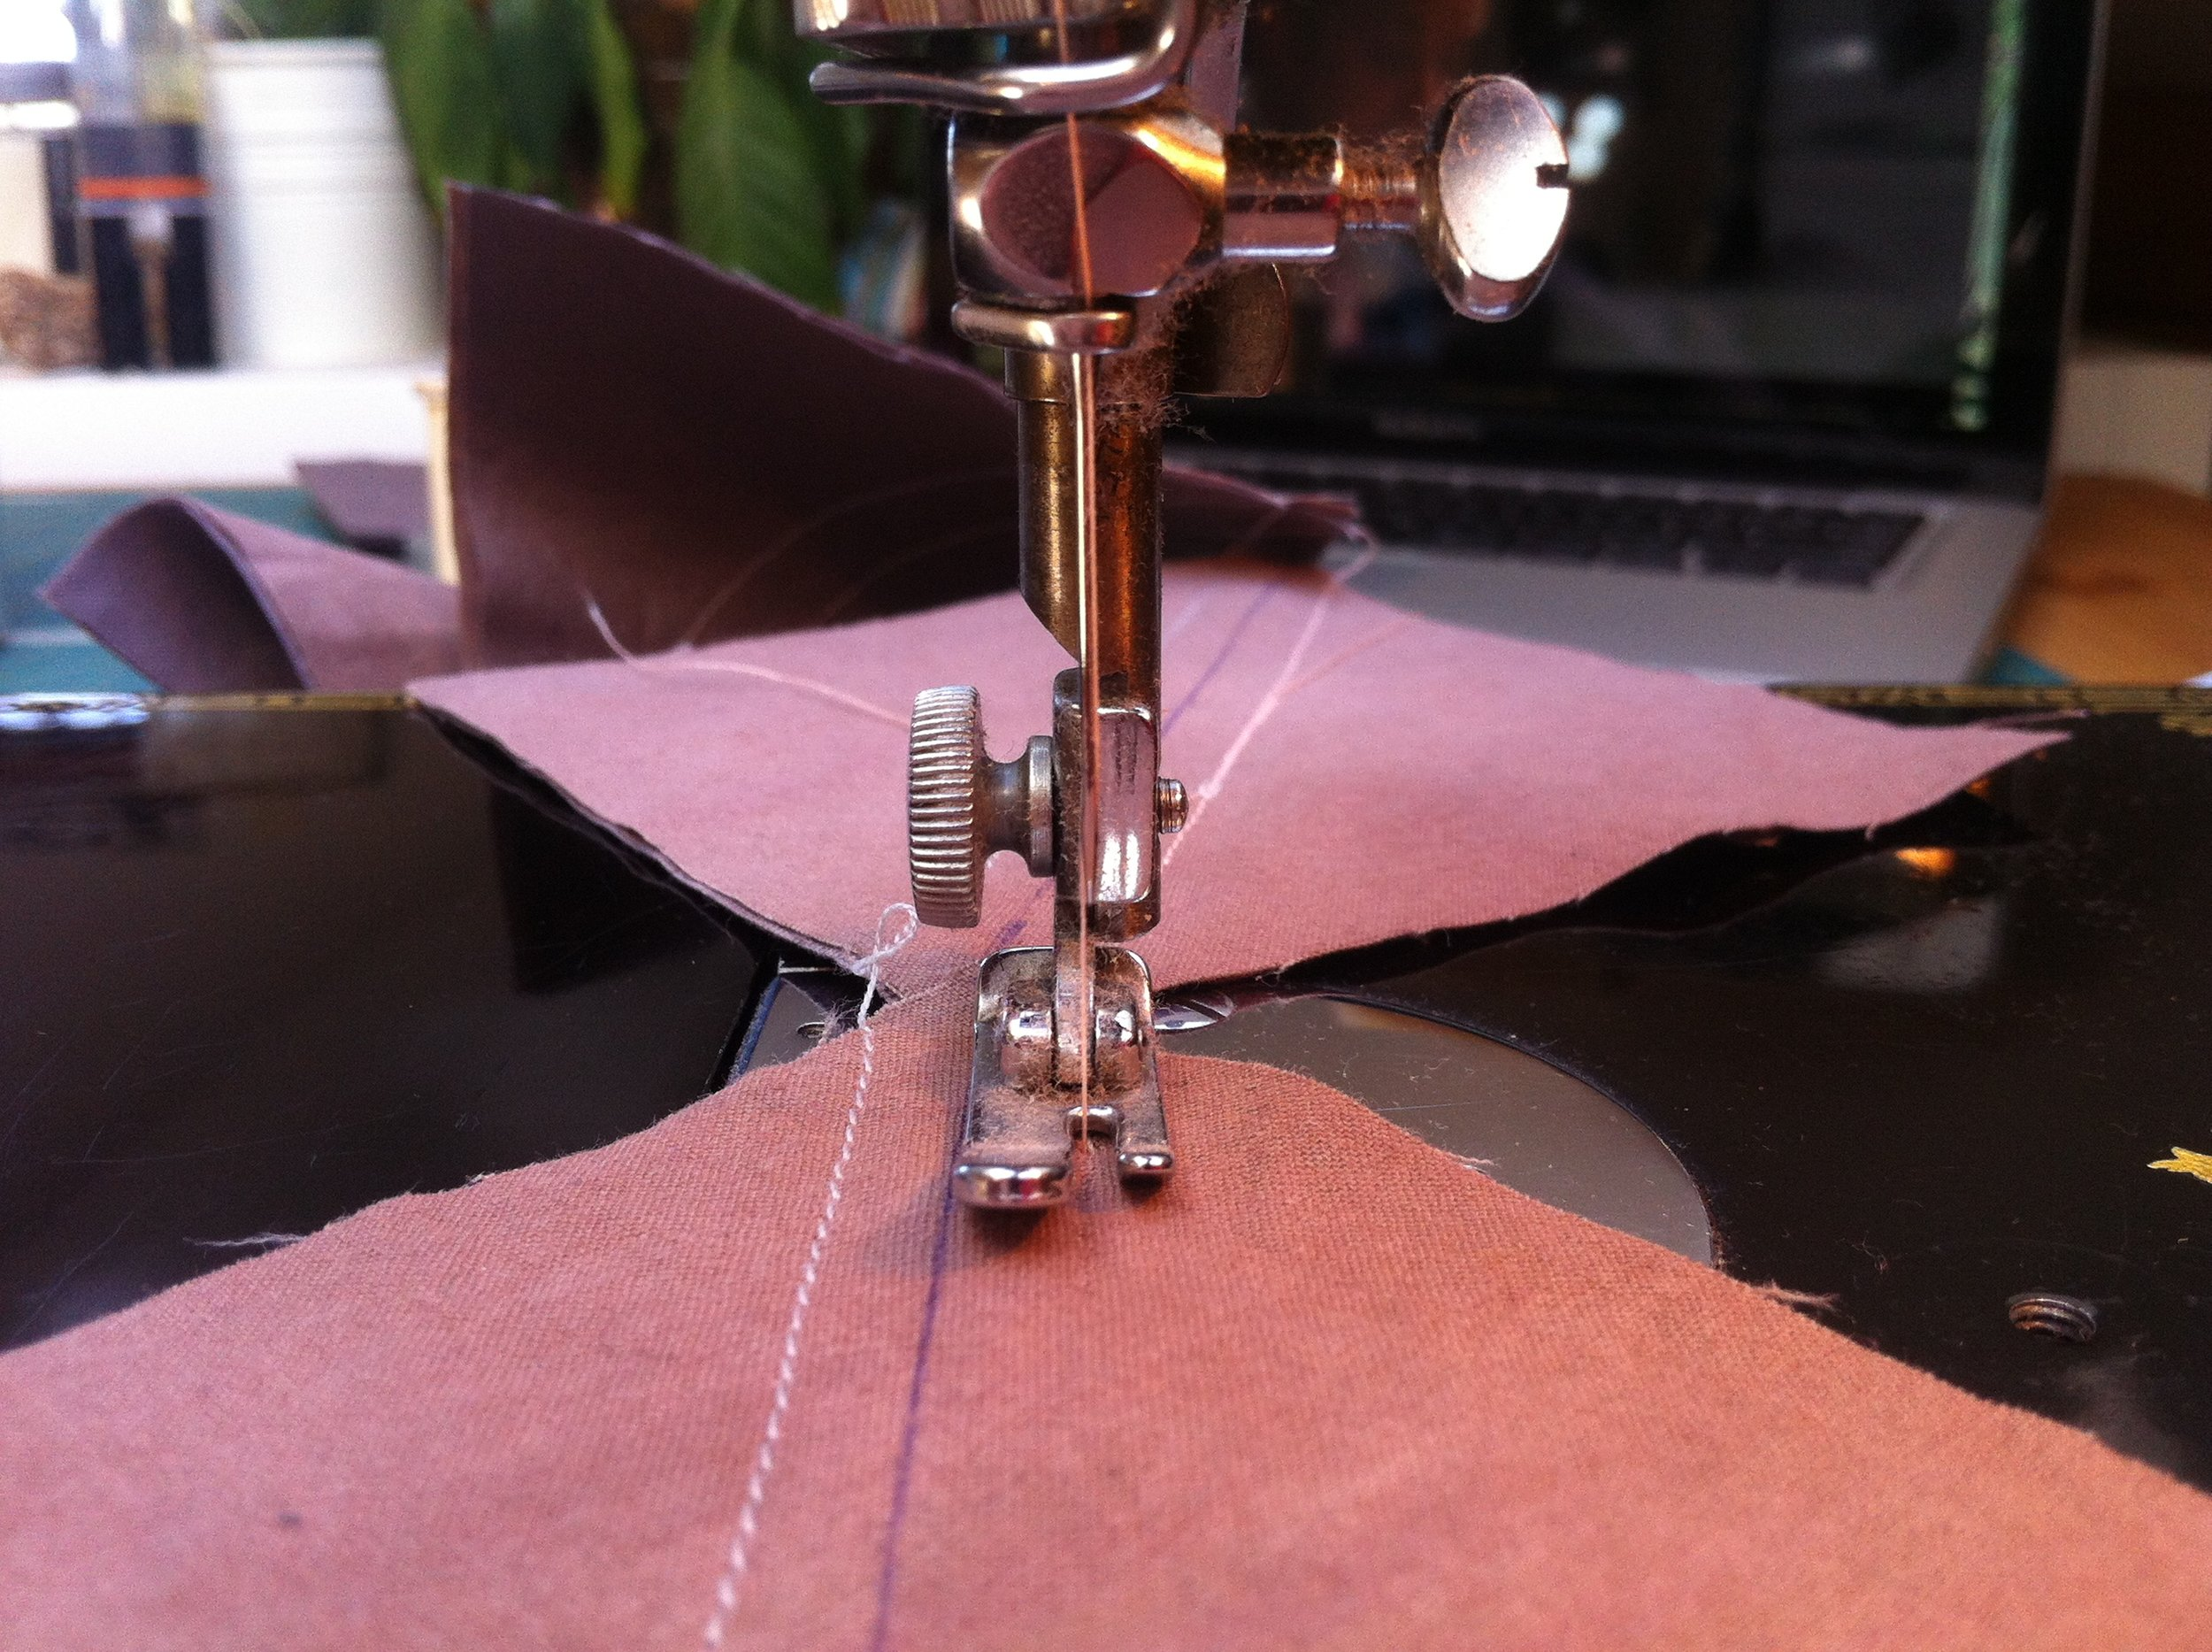 stitching away on my vintage featherweight